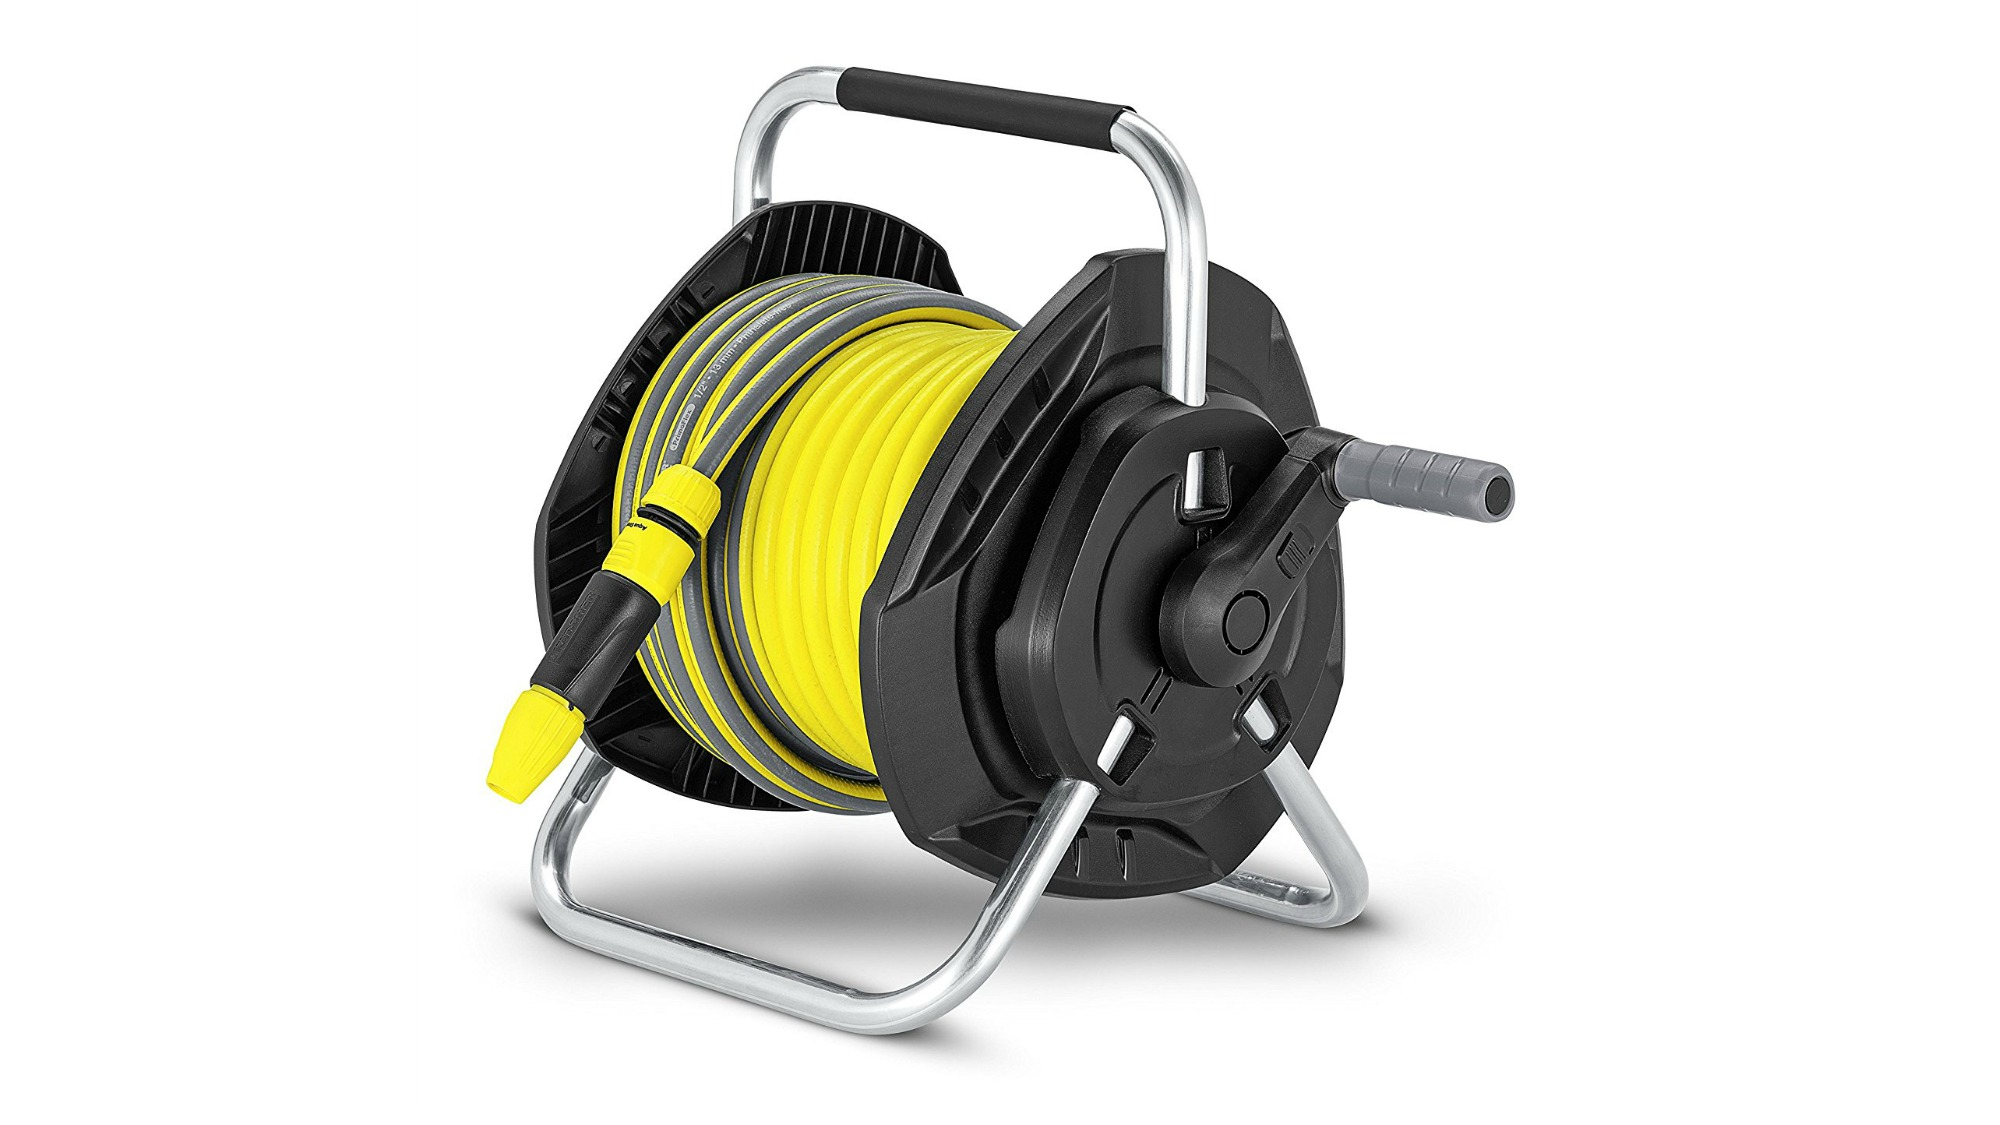 karcher hr4525 hose reel - Best Garden Hose Reel